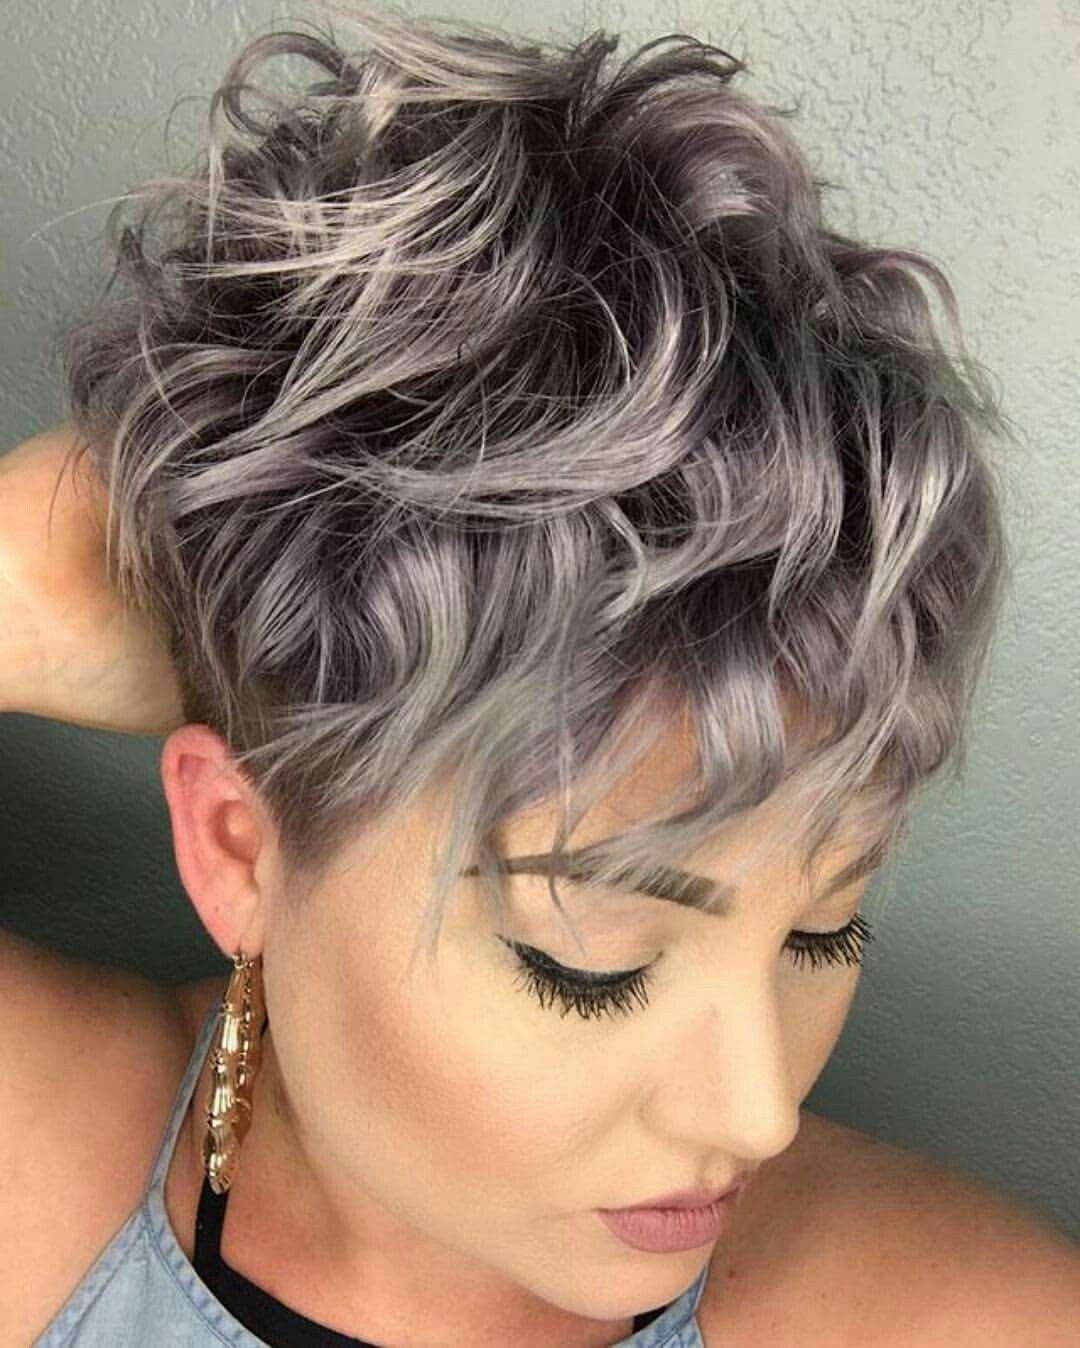 Pin by cricket agneberg on hair pinterest hair cuts short hair